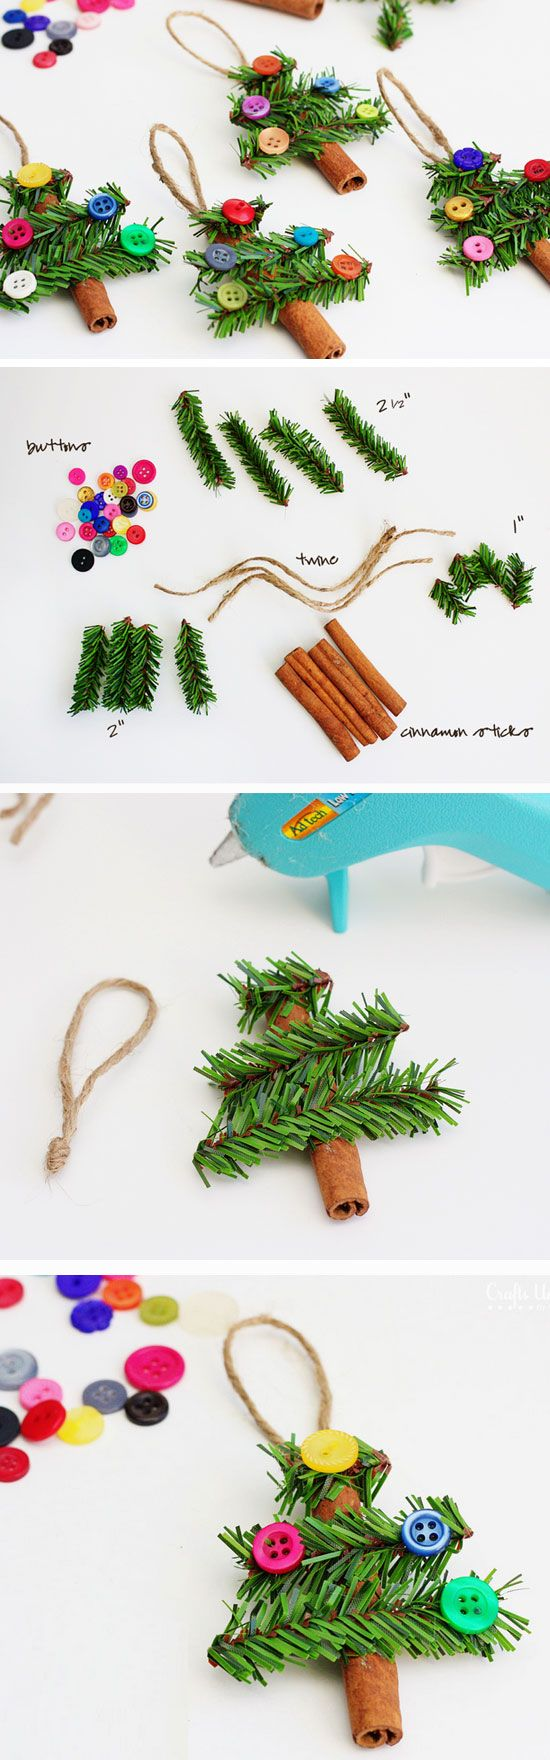 Cinnamon Stick Trees for Kids.